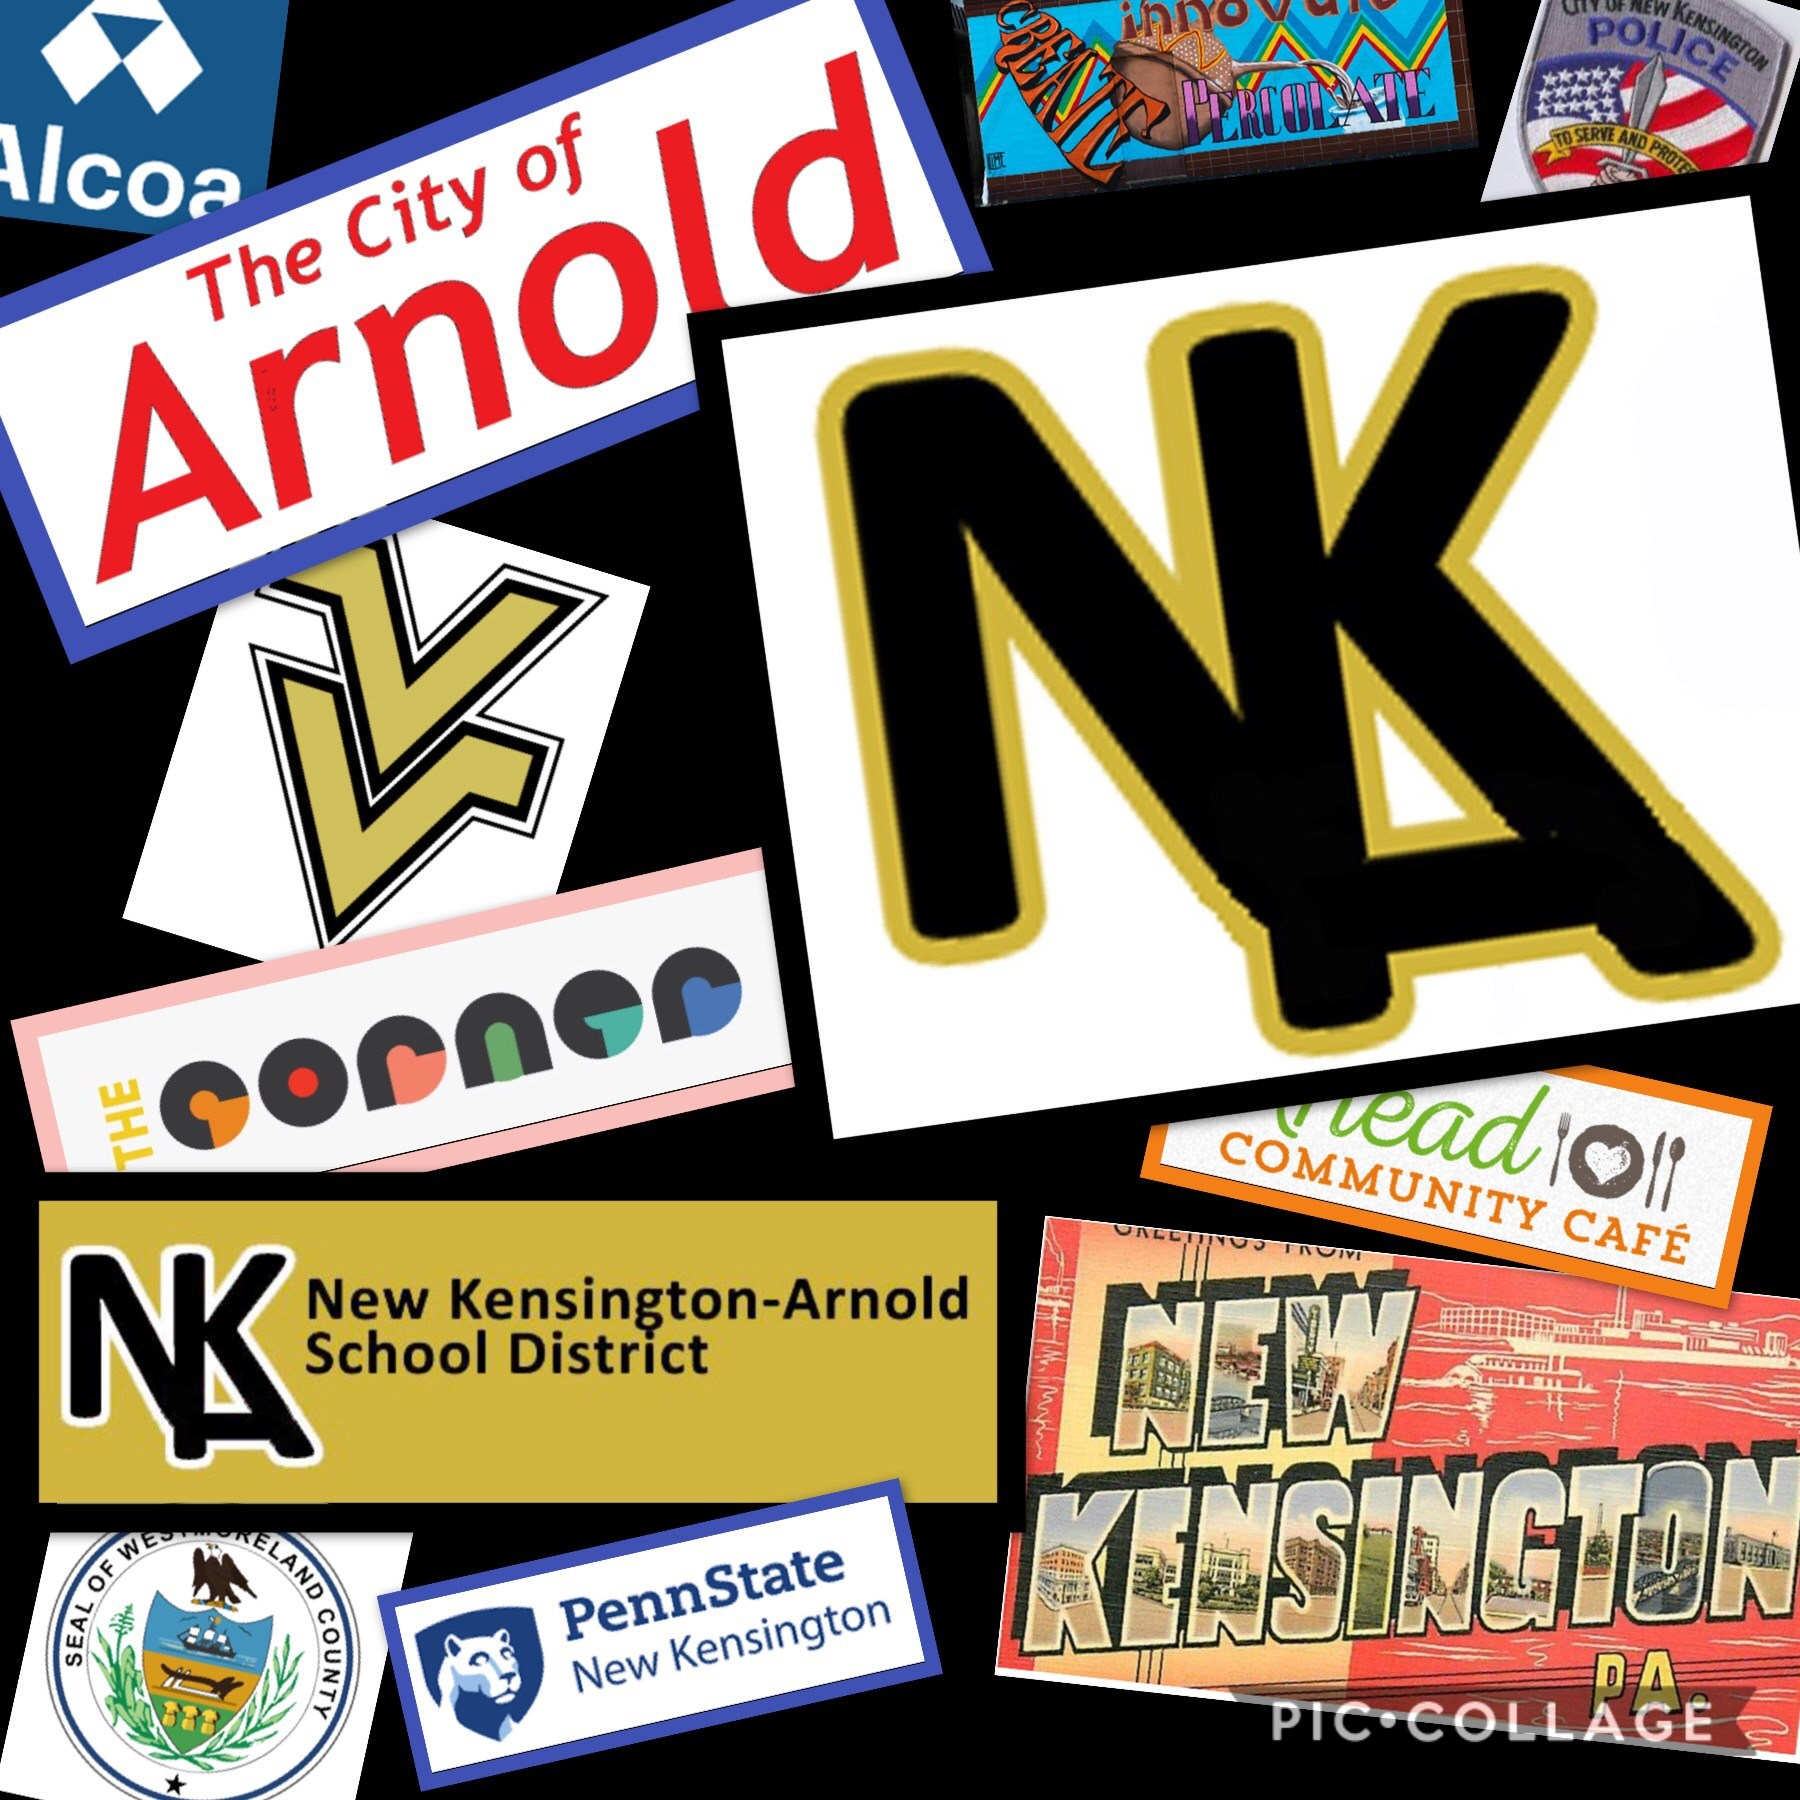 Collage of logos from the New Kensington-Arnold Area